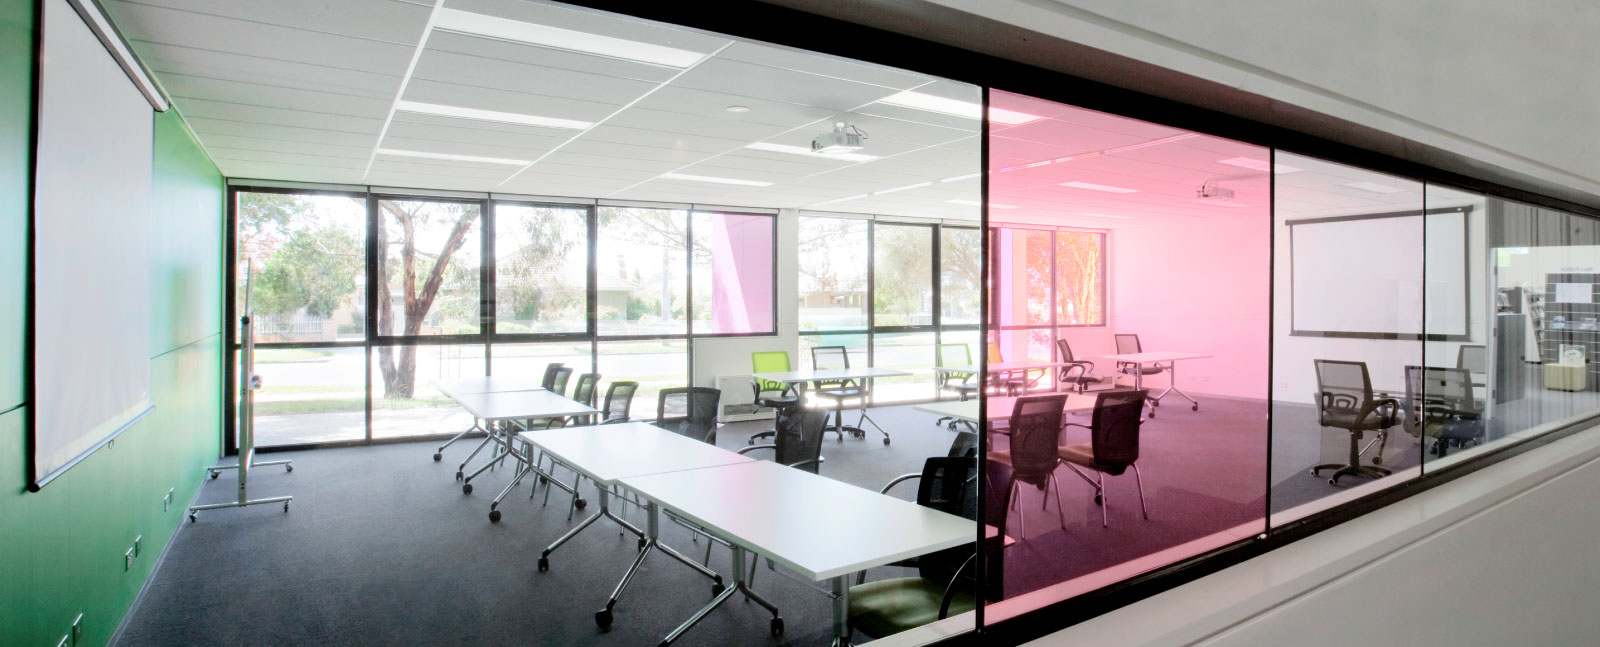 H2o Architects Melbourne-Avondale Heights Library and Learning Centre-05